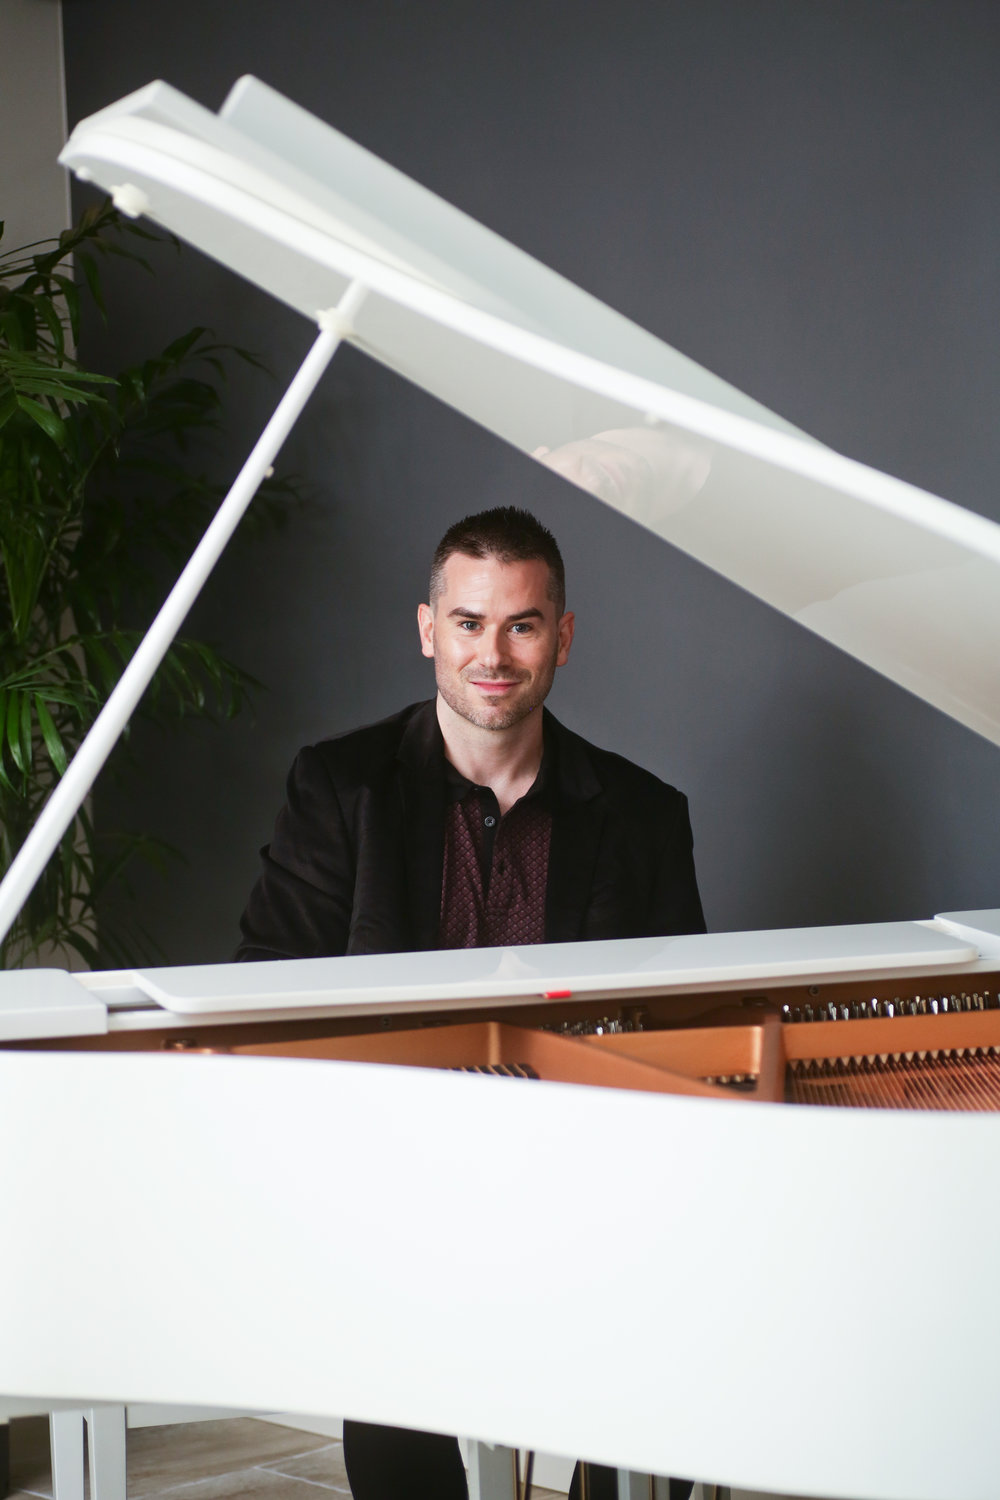 Lucas Francis Piano & Songwriting Coach at I Heart My Voice